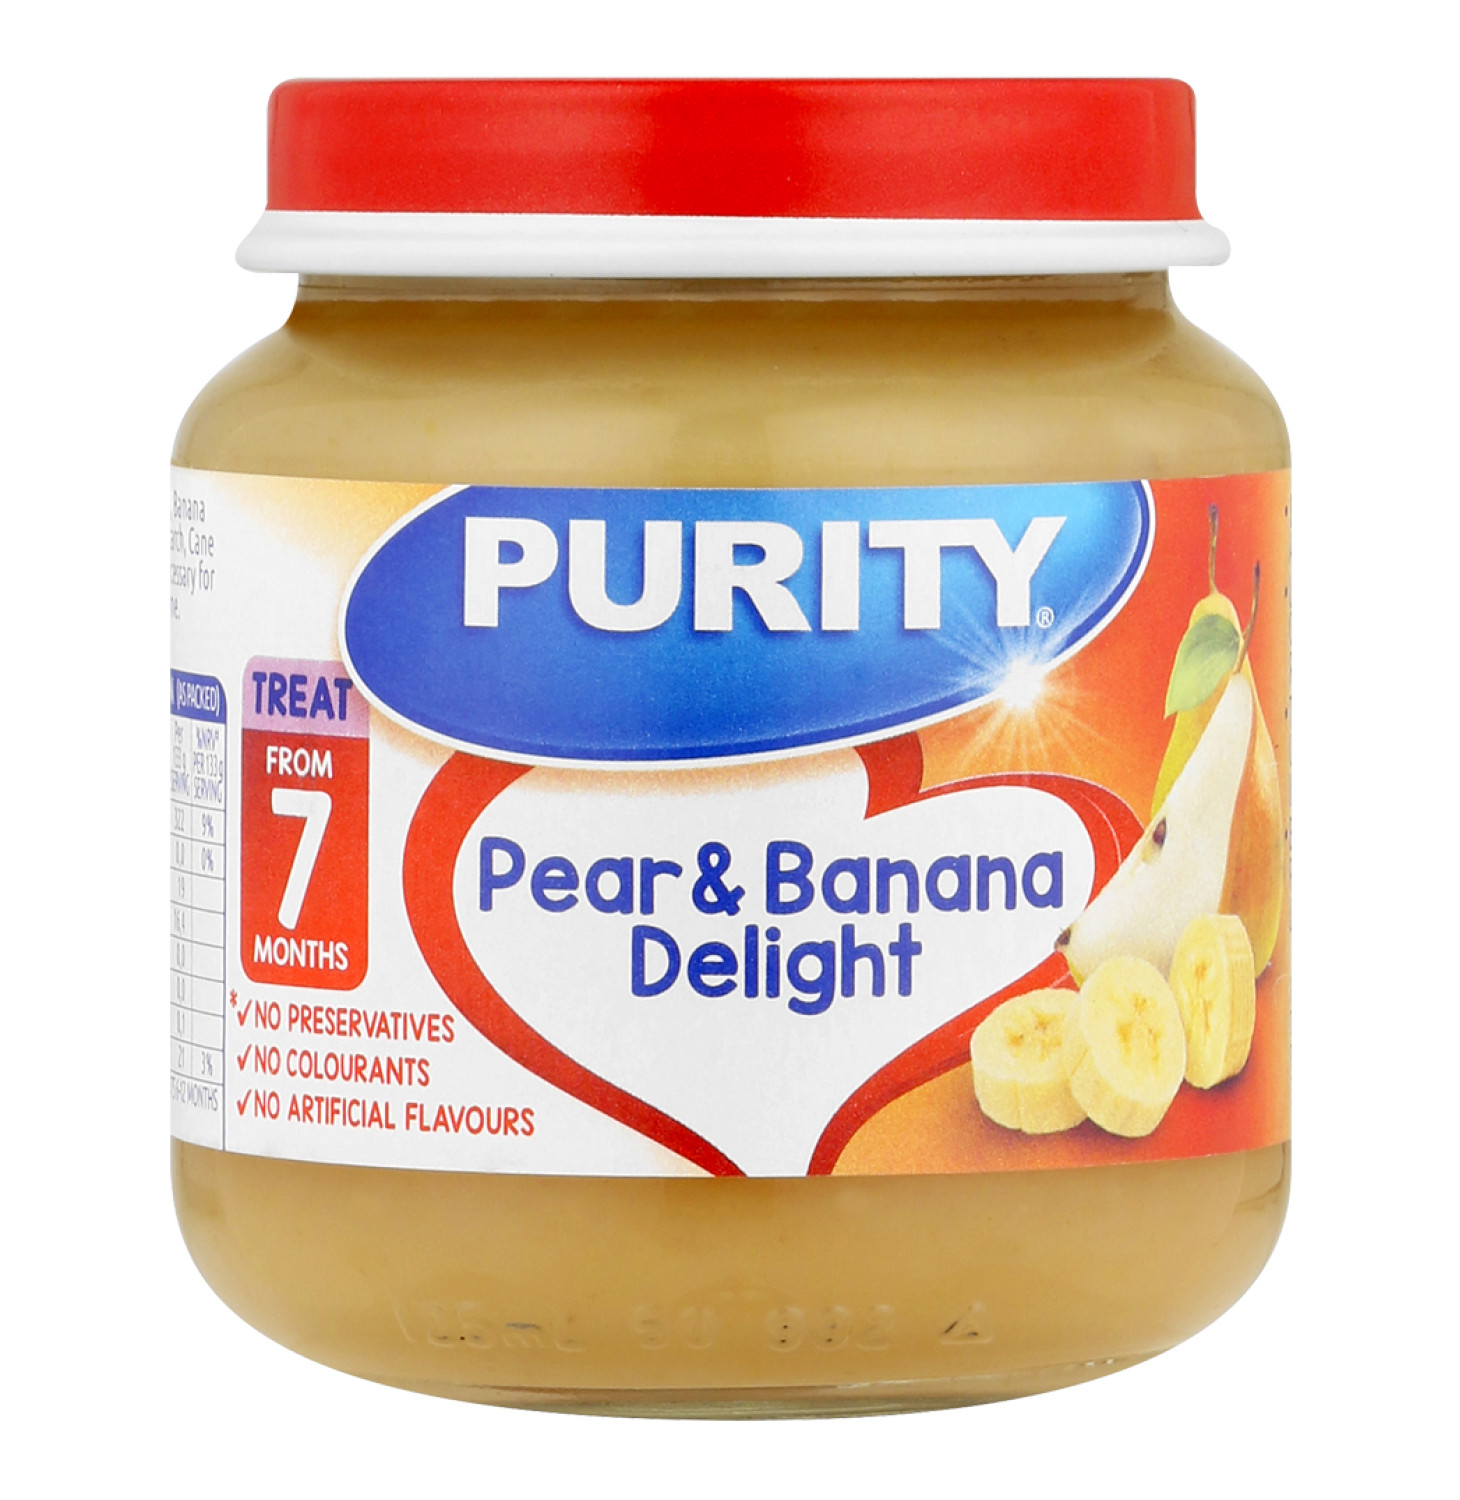 Purity 2nd Foods Pear and Banana Delight (1 x 125ml)